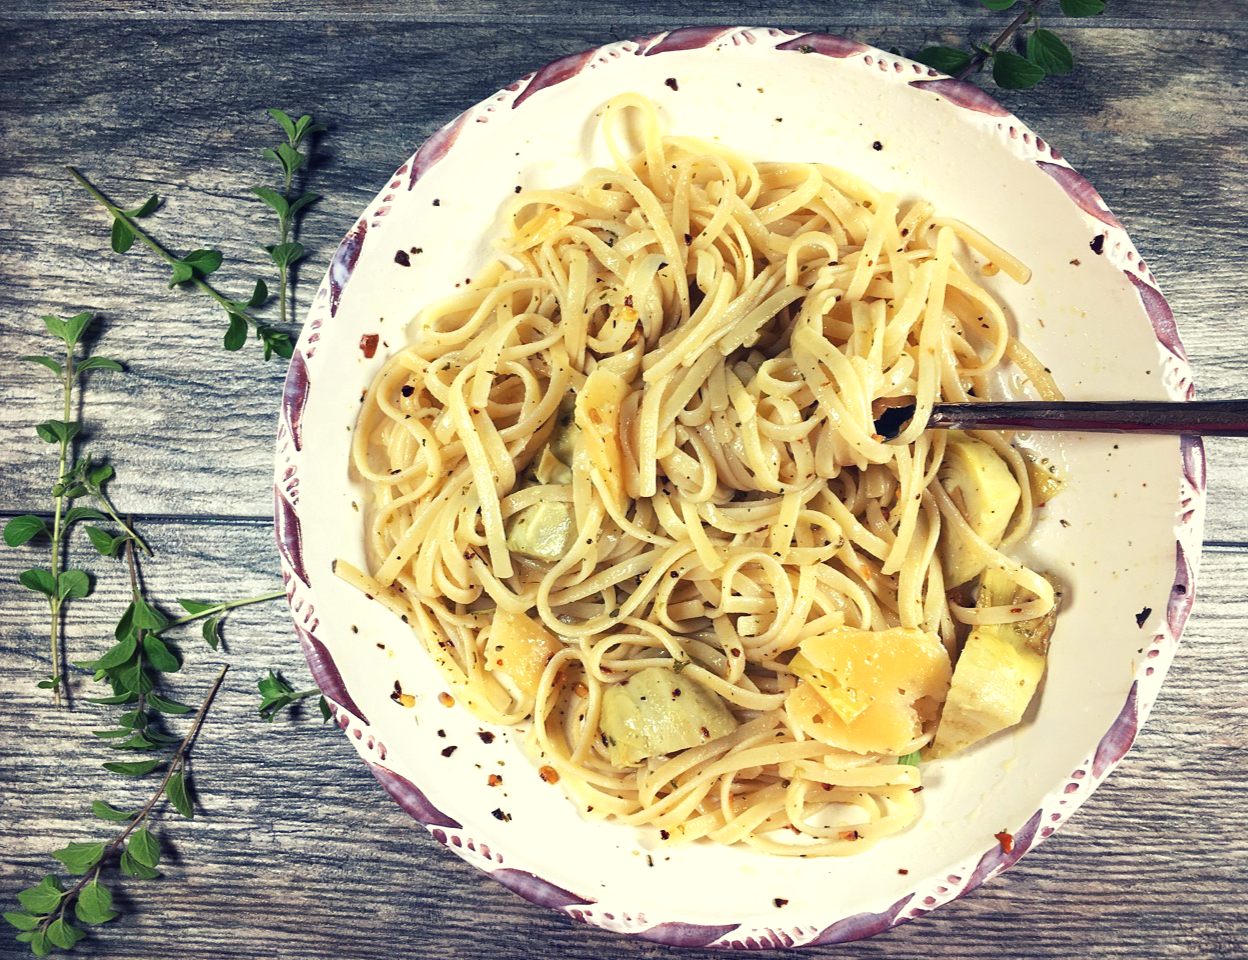 quick and easy recipe for gluten-free Meatless Monday linguine